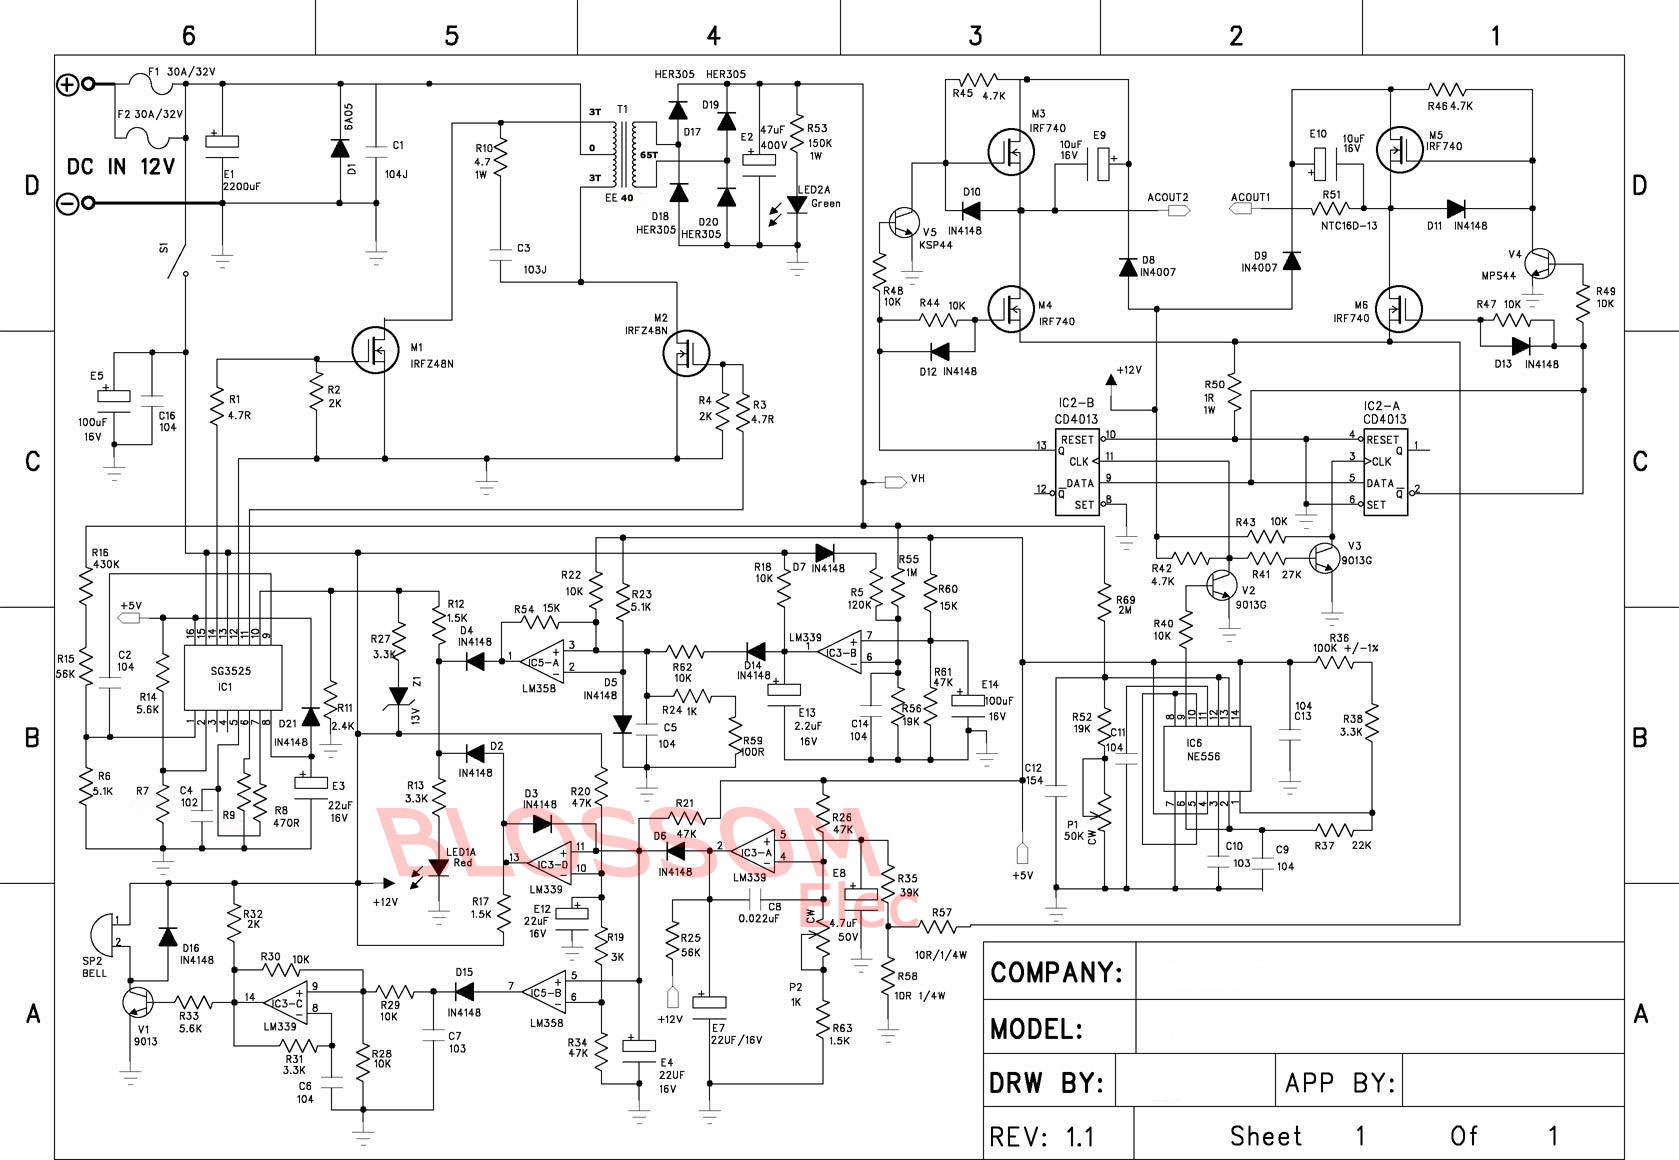 solved dc to ac inverter h bridge rh edaboard com H-Bridge Inverter Circuit  Diagram H-Bridge Inverter Circuit Diagram